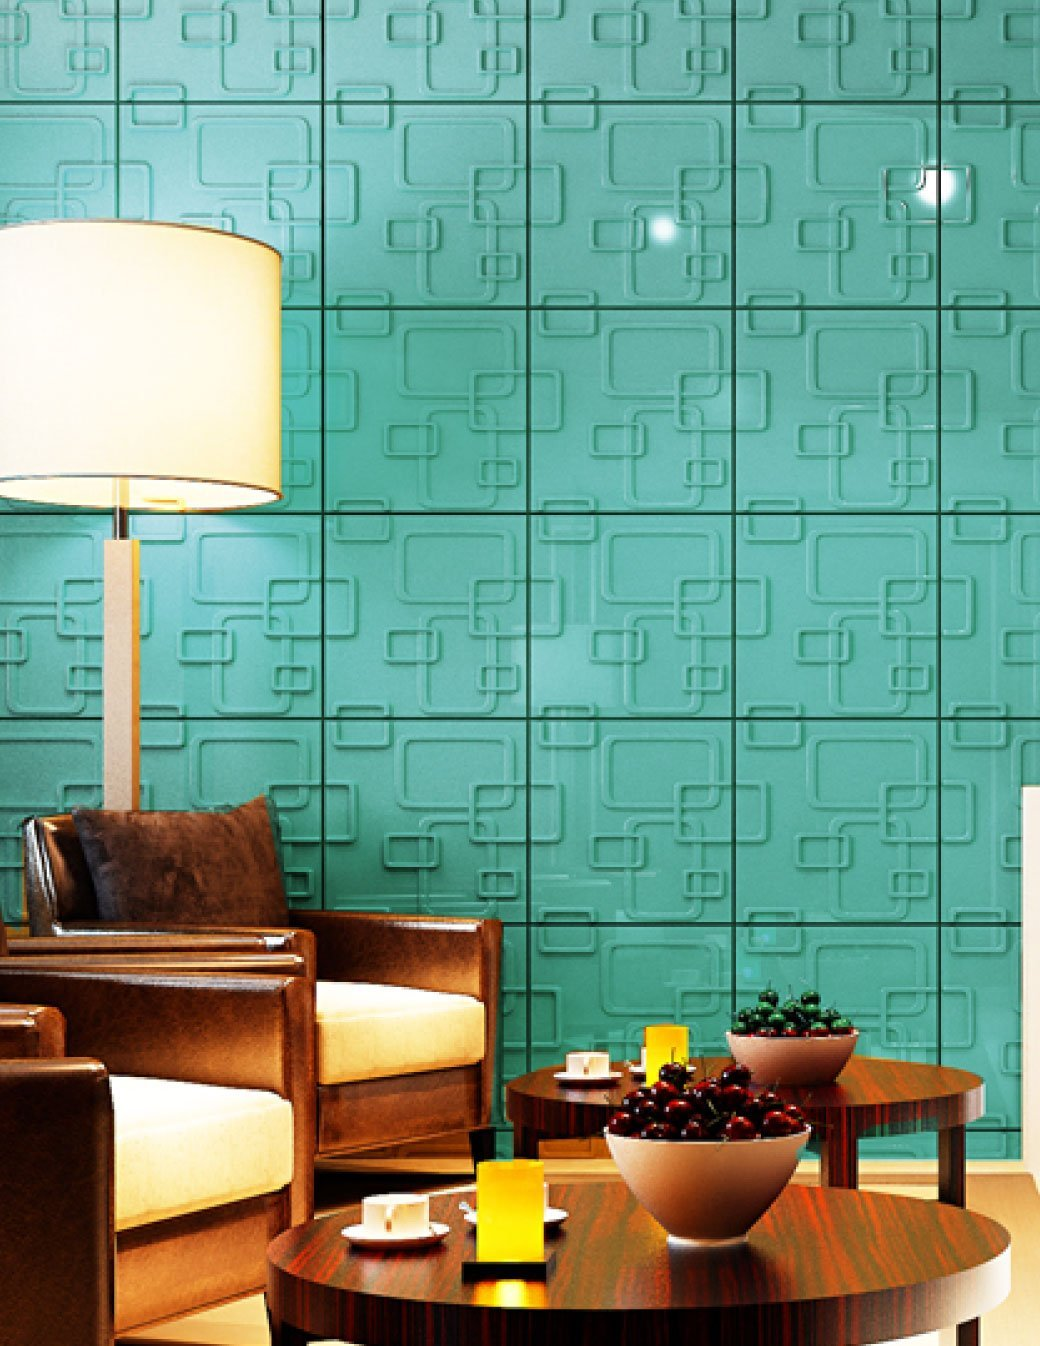 Affordable Home Innovations Modern Maze 3d Wall Panels Eco-friendly 32 Sq Ft